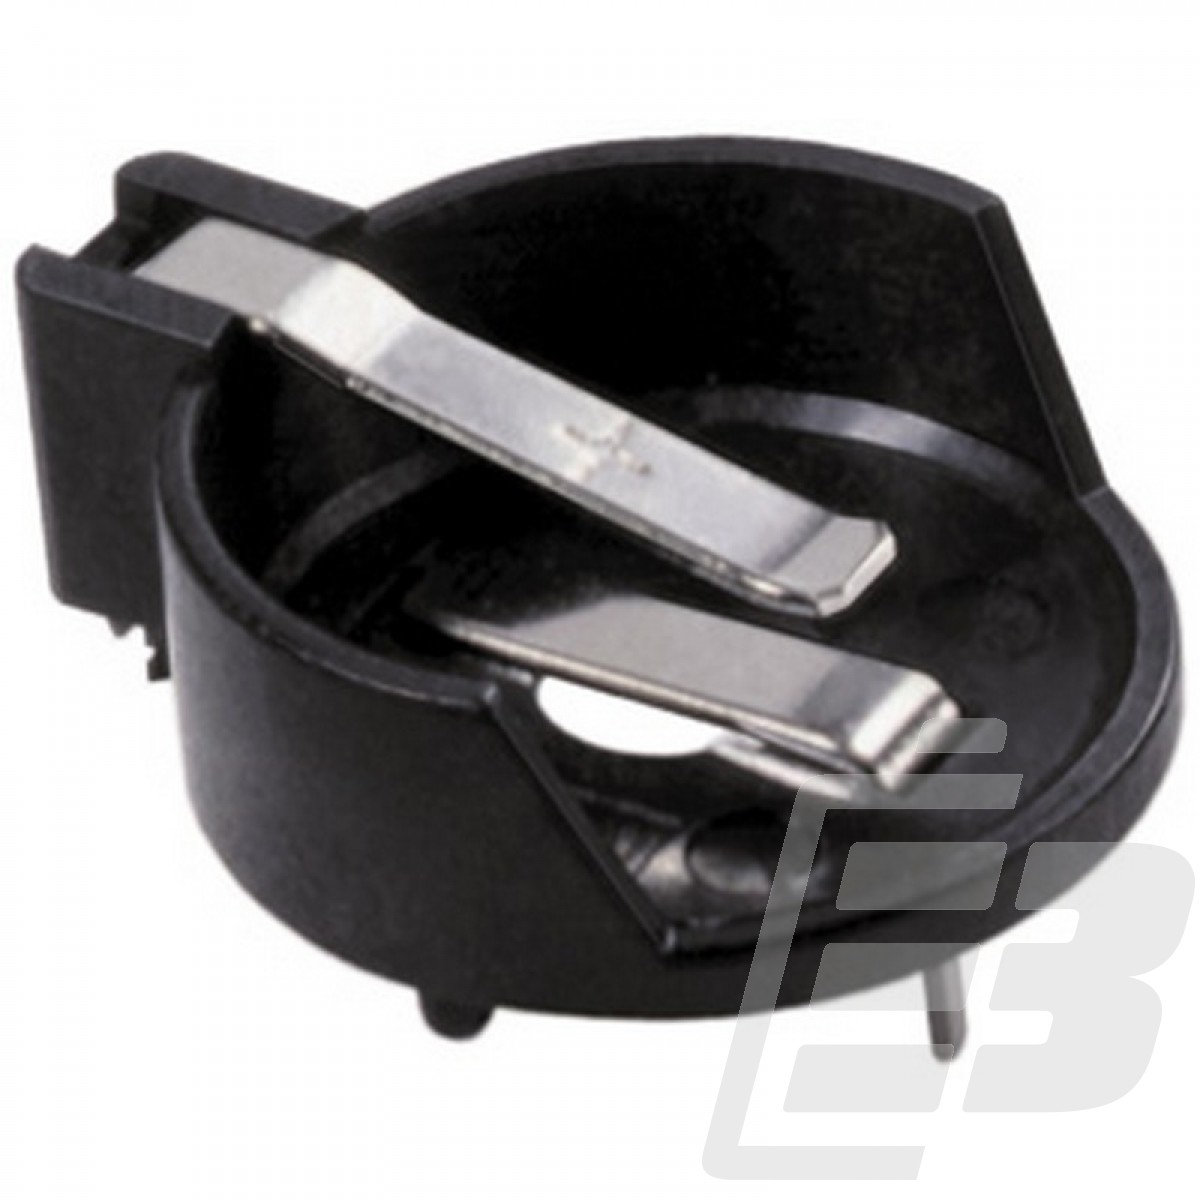 MPD Battery holder size 2032 2 cell